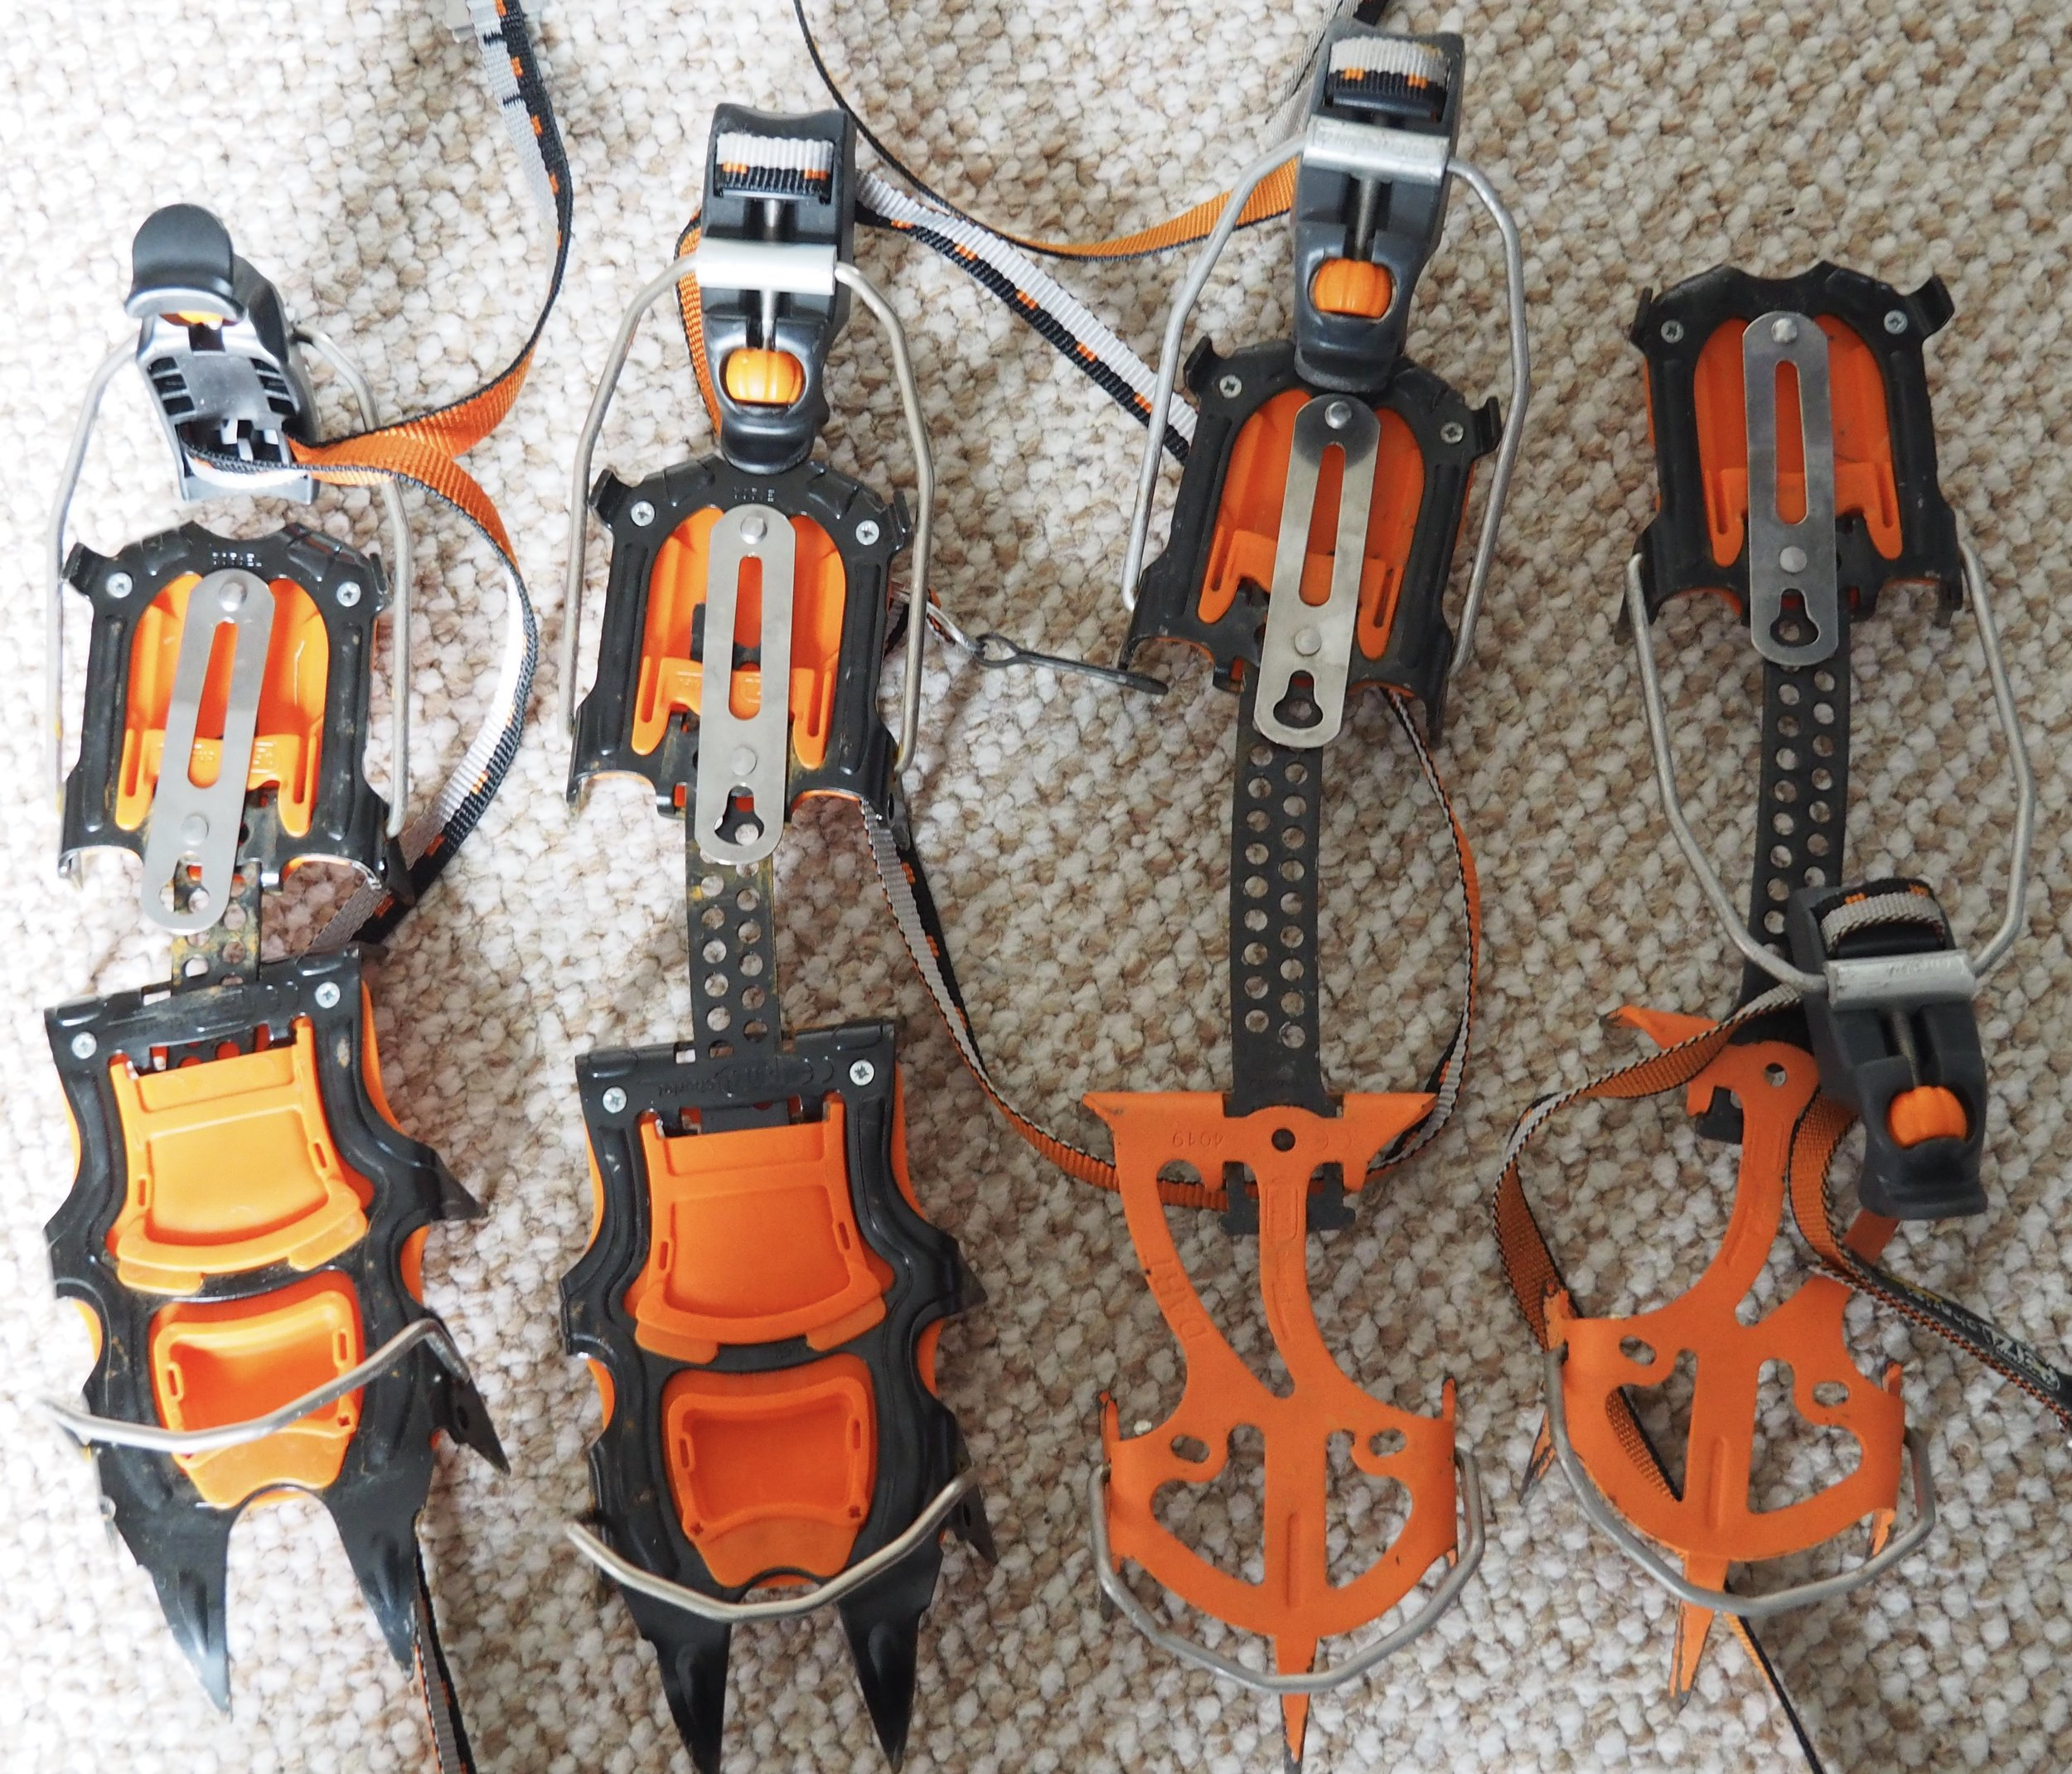 Having Classic and mixed crampons give you a lot of versatility. Petzl Crampons are great as the back section is the same so you can just take the front if you want to say weight.